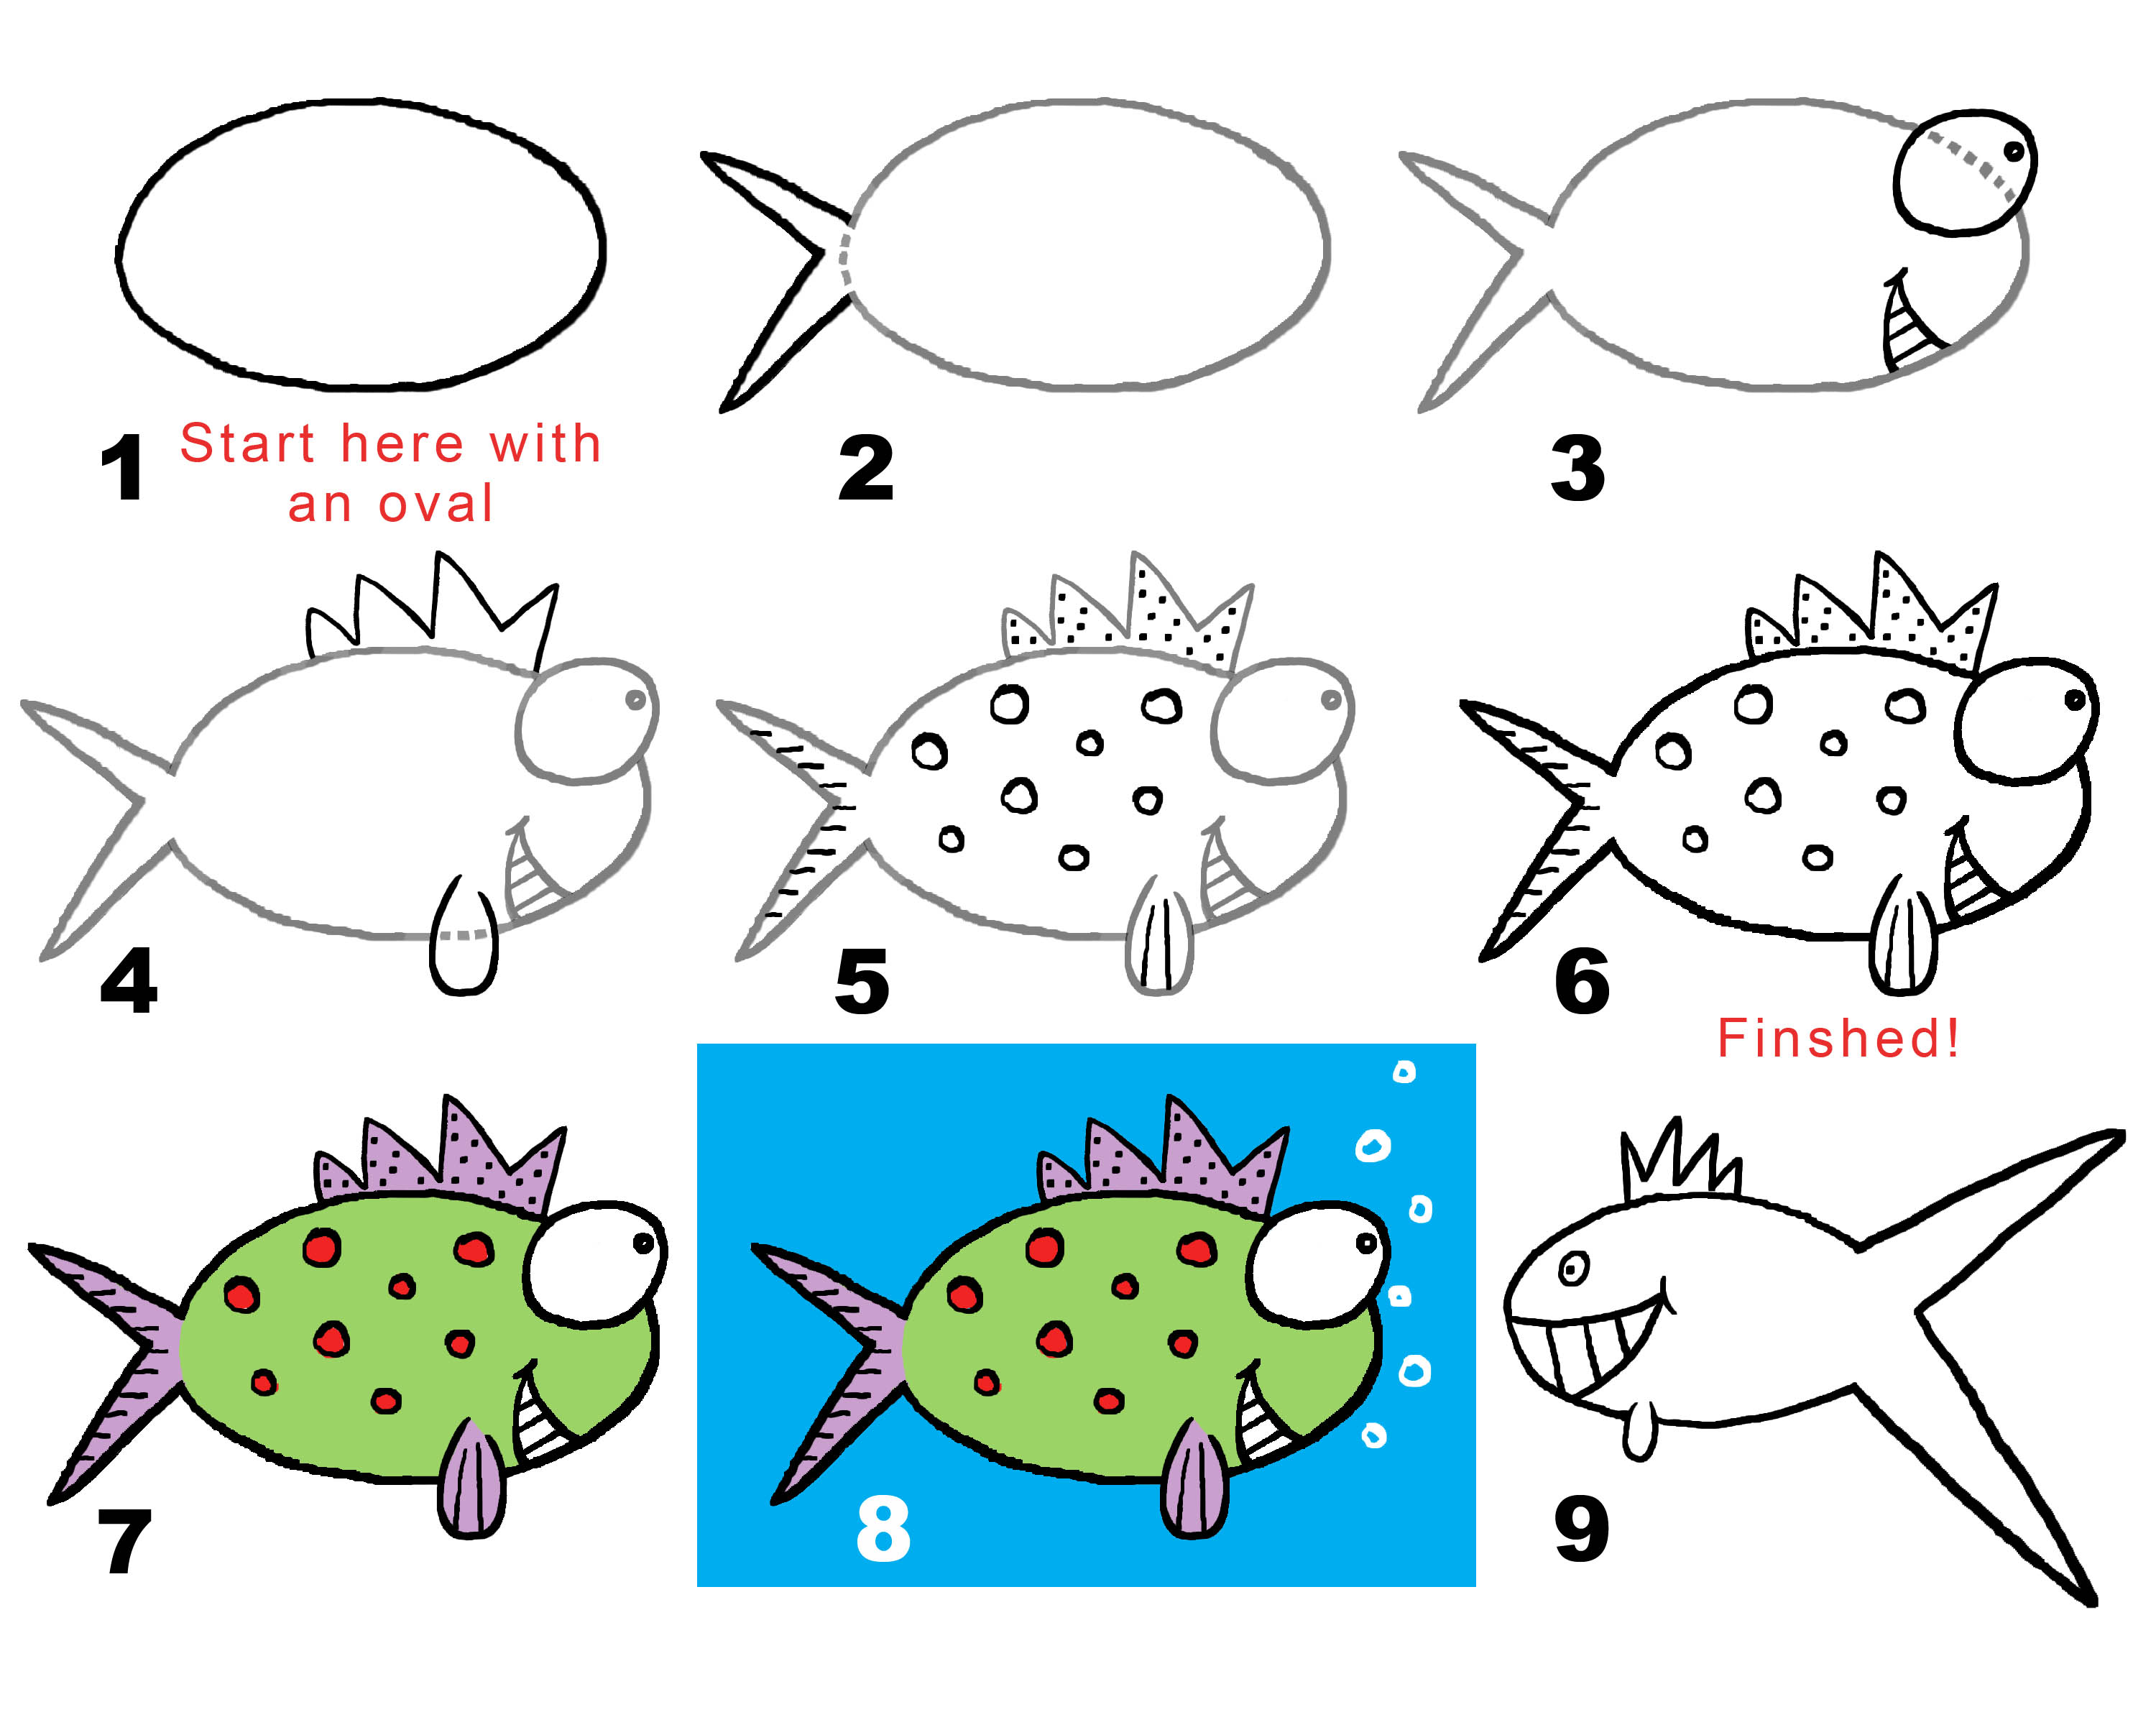 Fishy fishy draw your own conclusions draw with rich for How to draw a fish